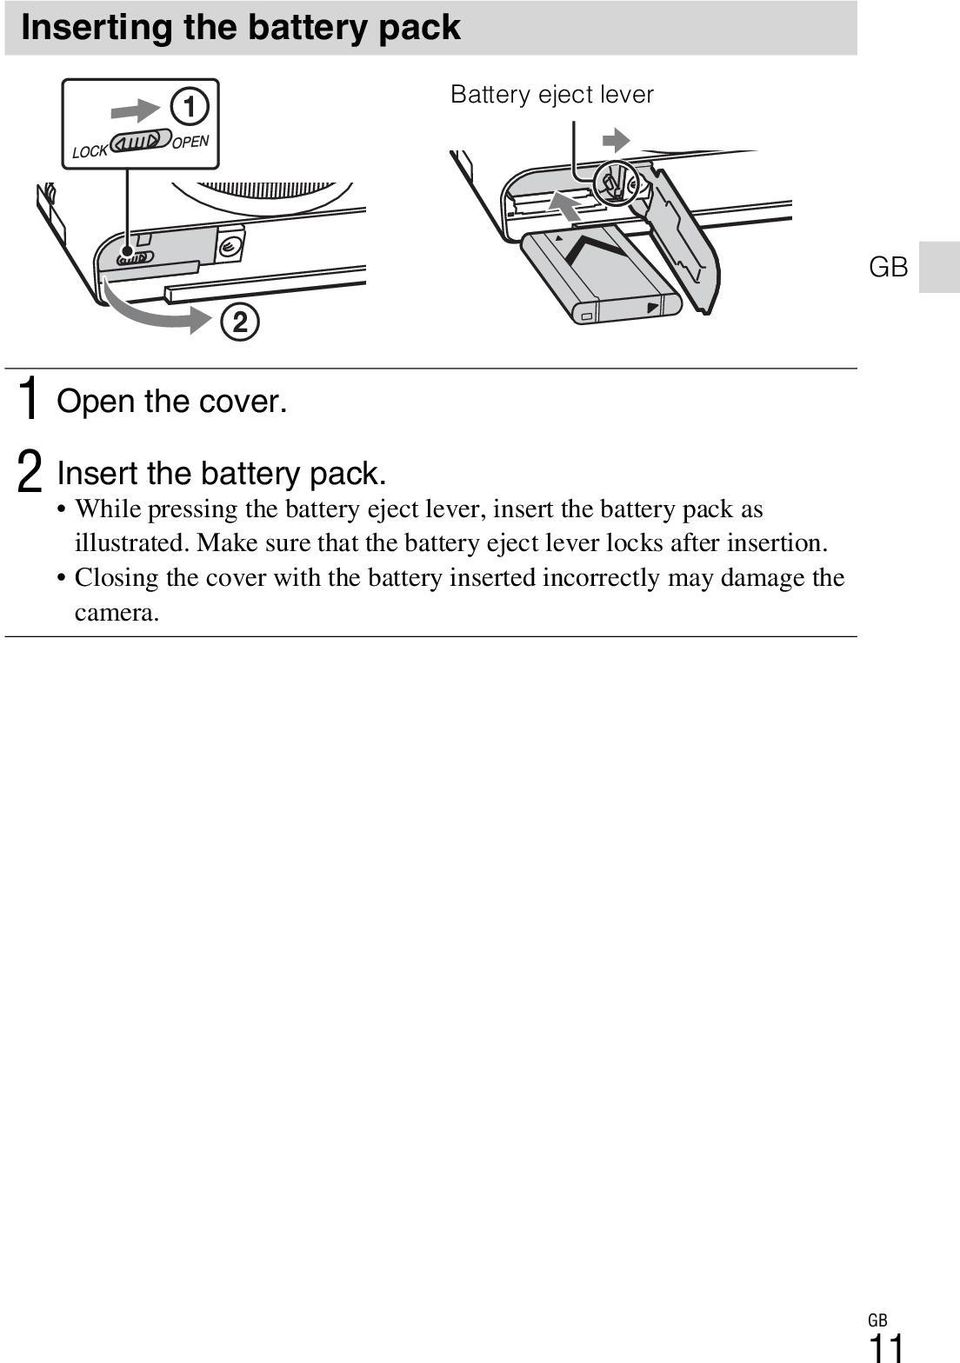 While pressing the battery eject lever, insert the battery pack as illustrated.